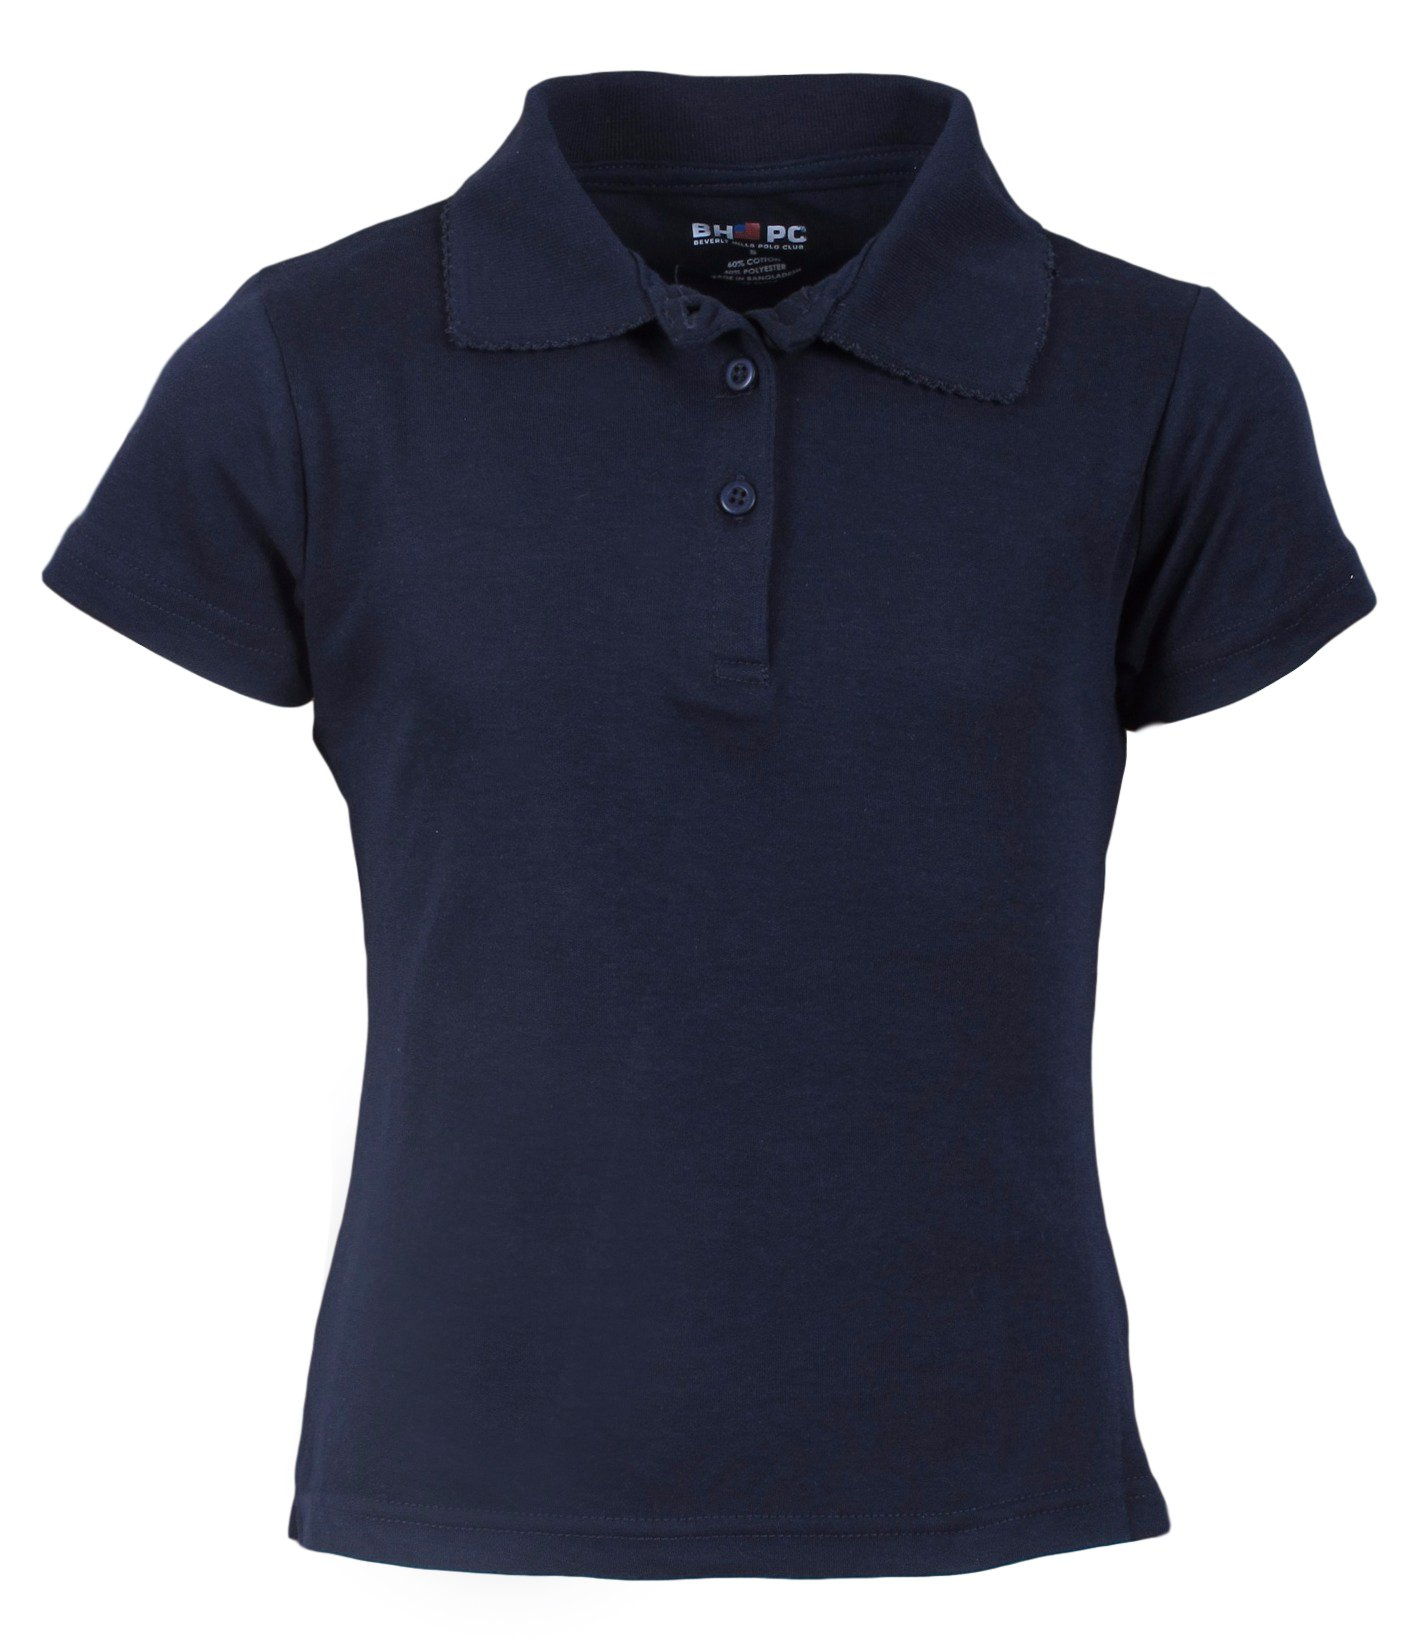 Beverly Hills Polo Club 3 Pack of Girls' Short Sleeve Interlock Uniform Polo Shirts, Size 14, Navy' by Beverly Hills Polo Club (Image #2)